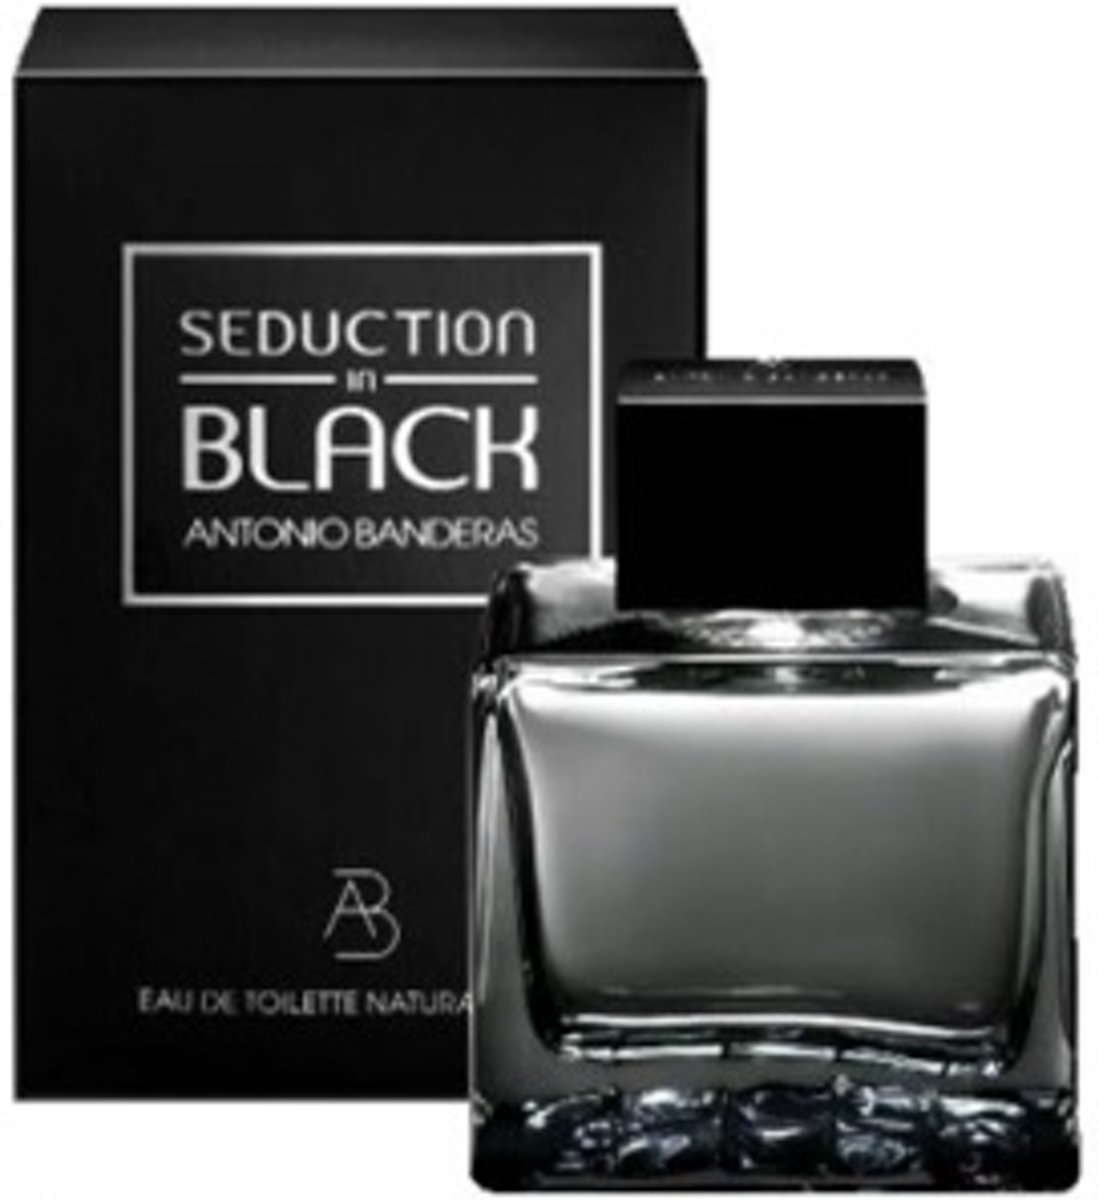 Antonio Banderas Seduction In Black - 50ml - Eau de toilette